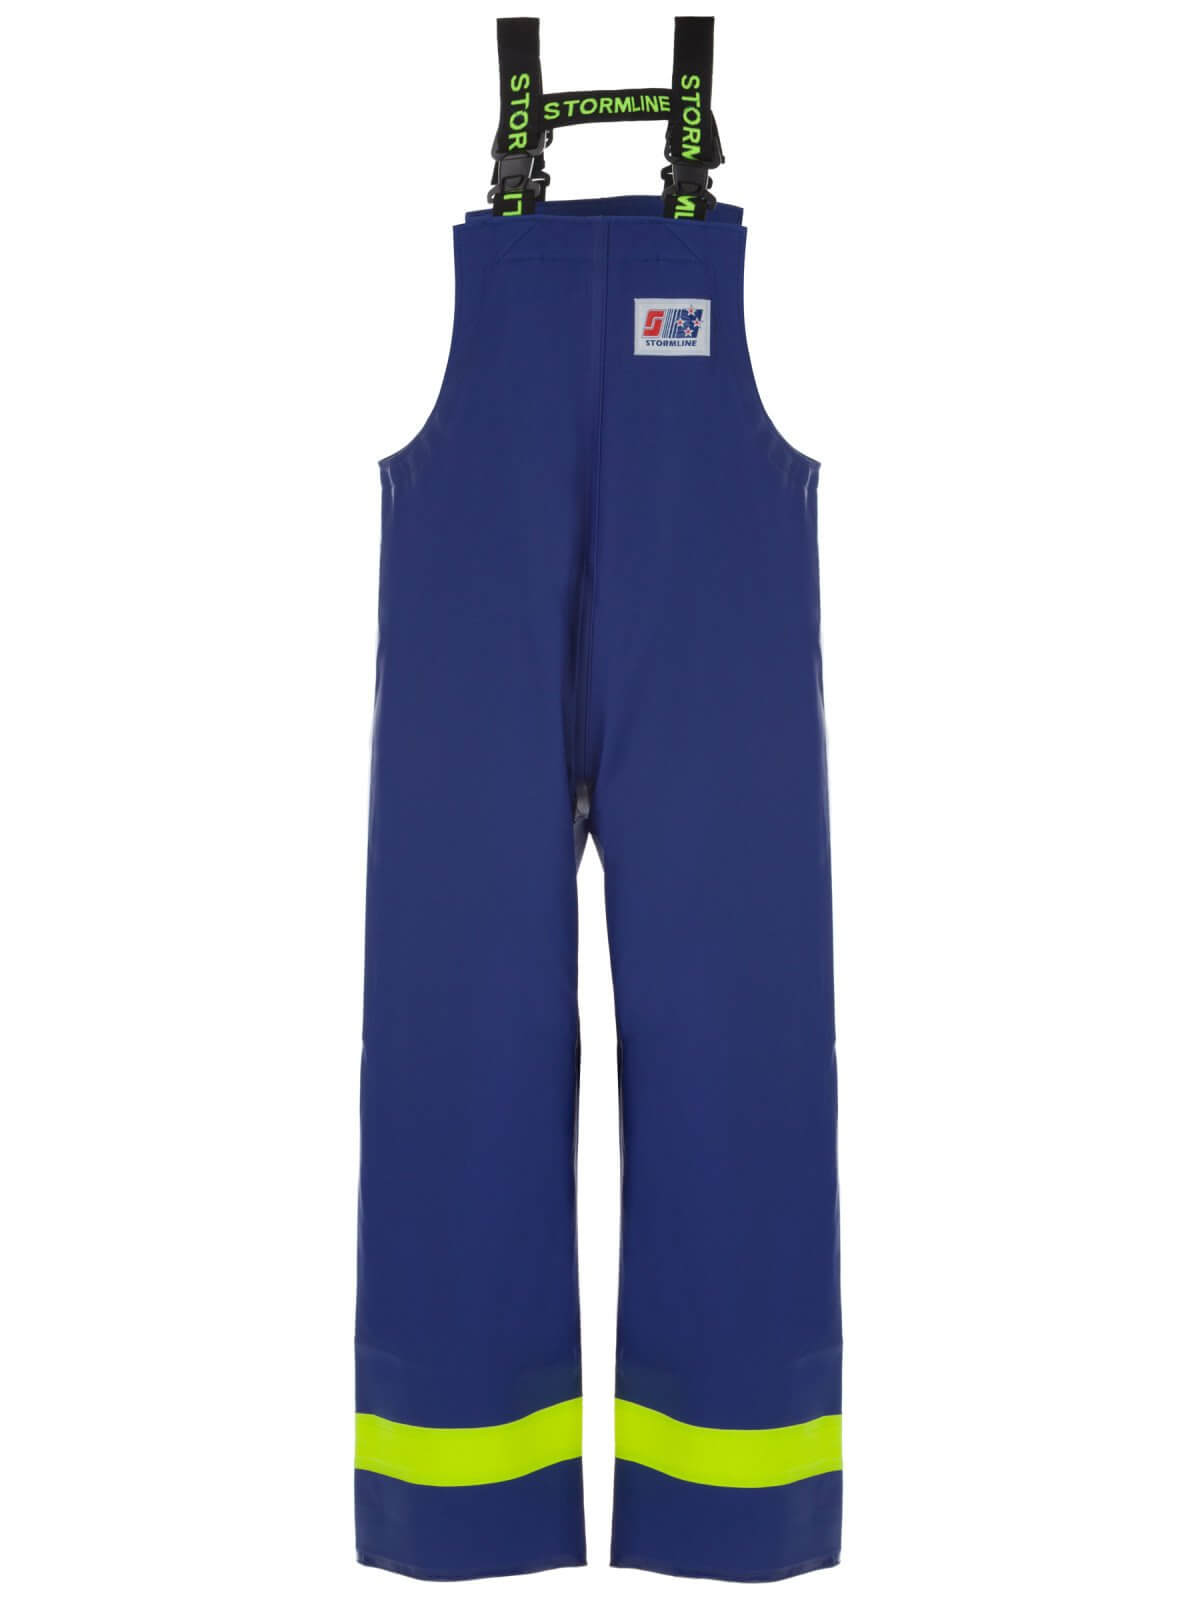 Captain 39 s 600 lightweight foul weather pants stormline for Foul weather fishing gear